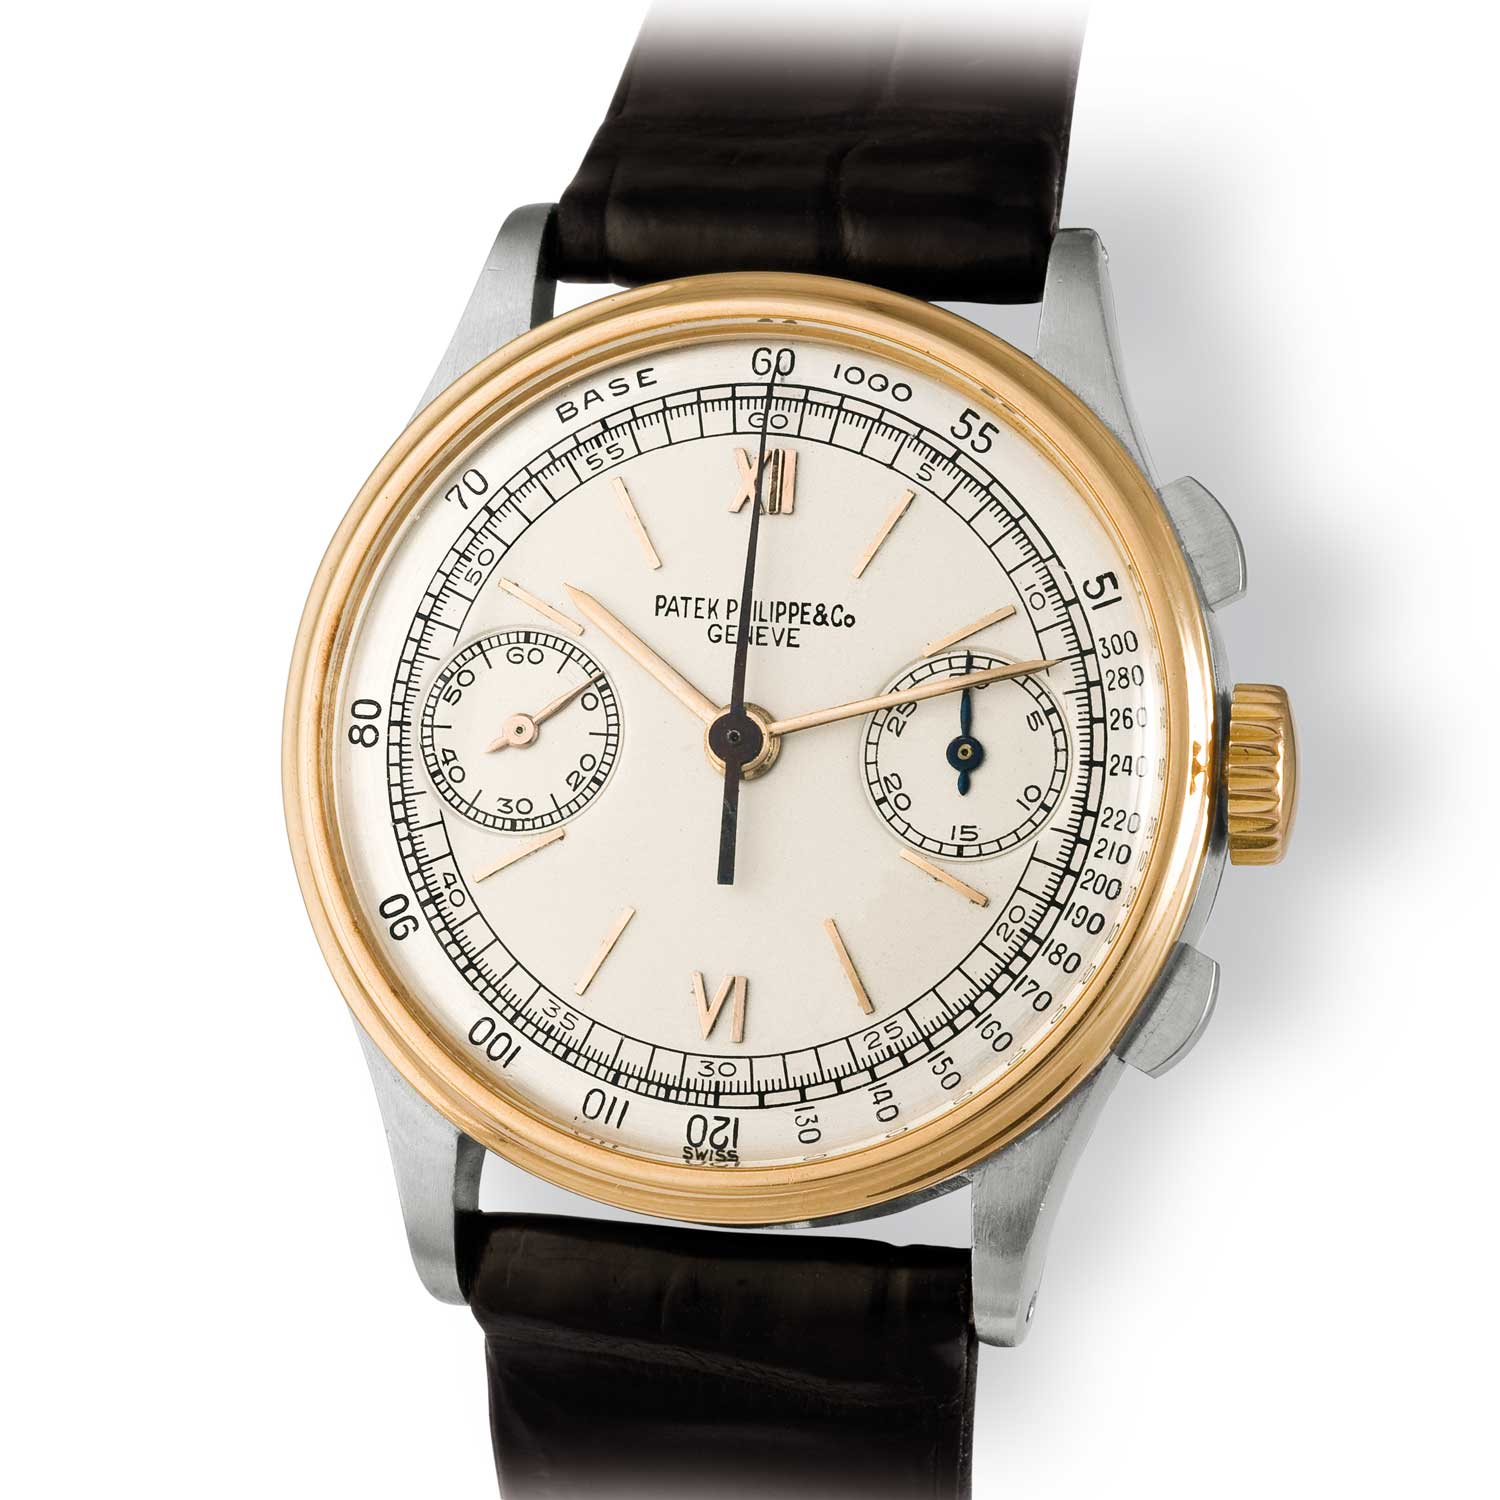 Patek Philippe ref. 130 steel and gold chronograph with mix of Roman and baton markets (Image: John Goldberger)